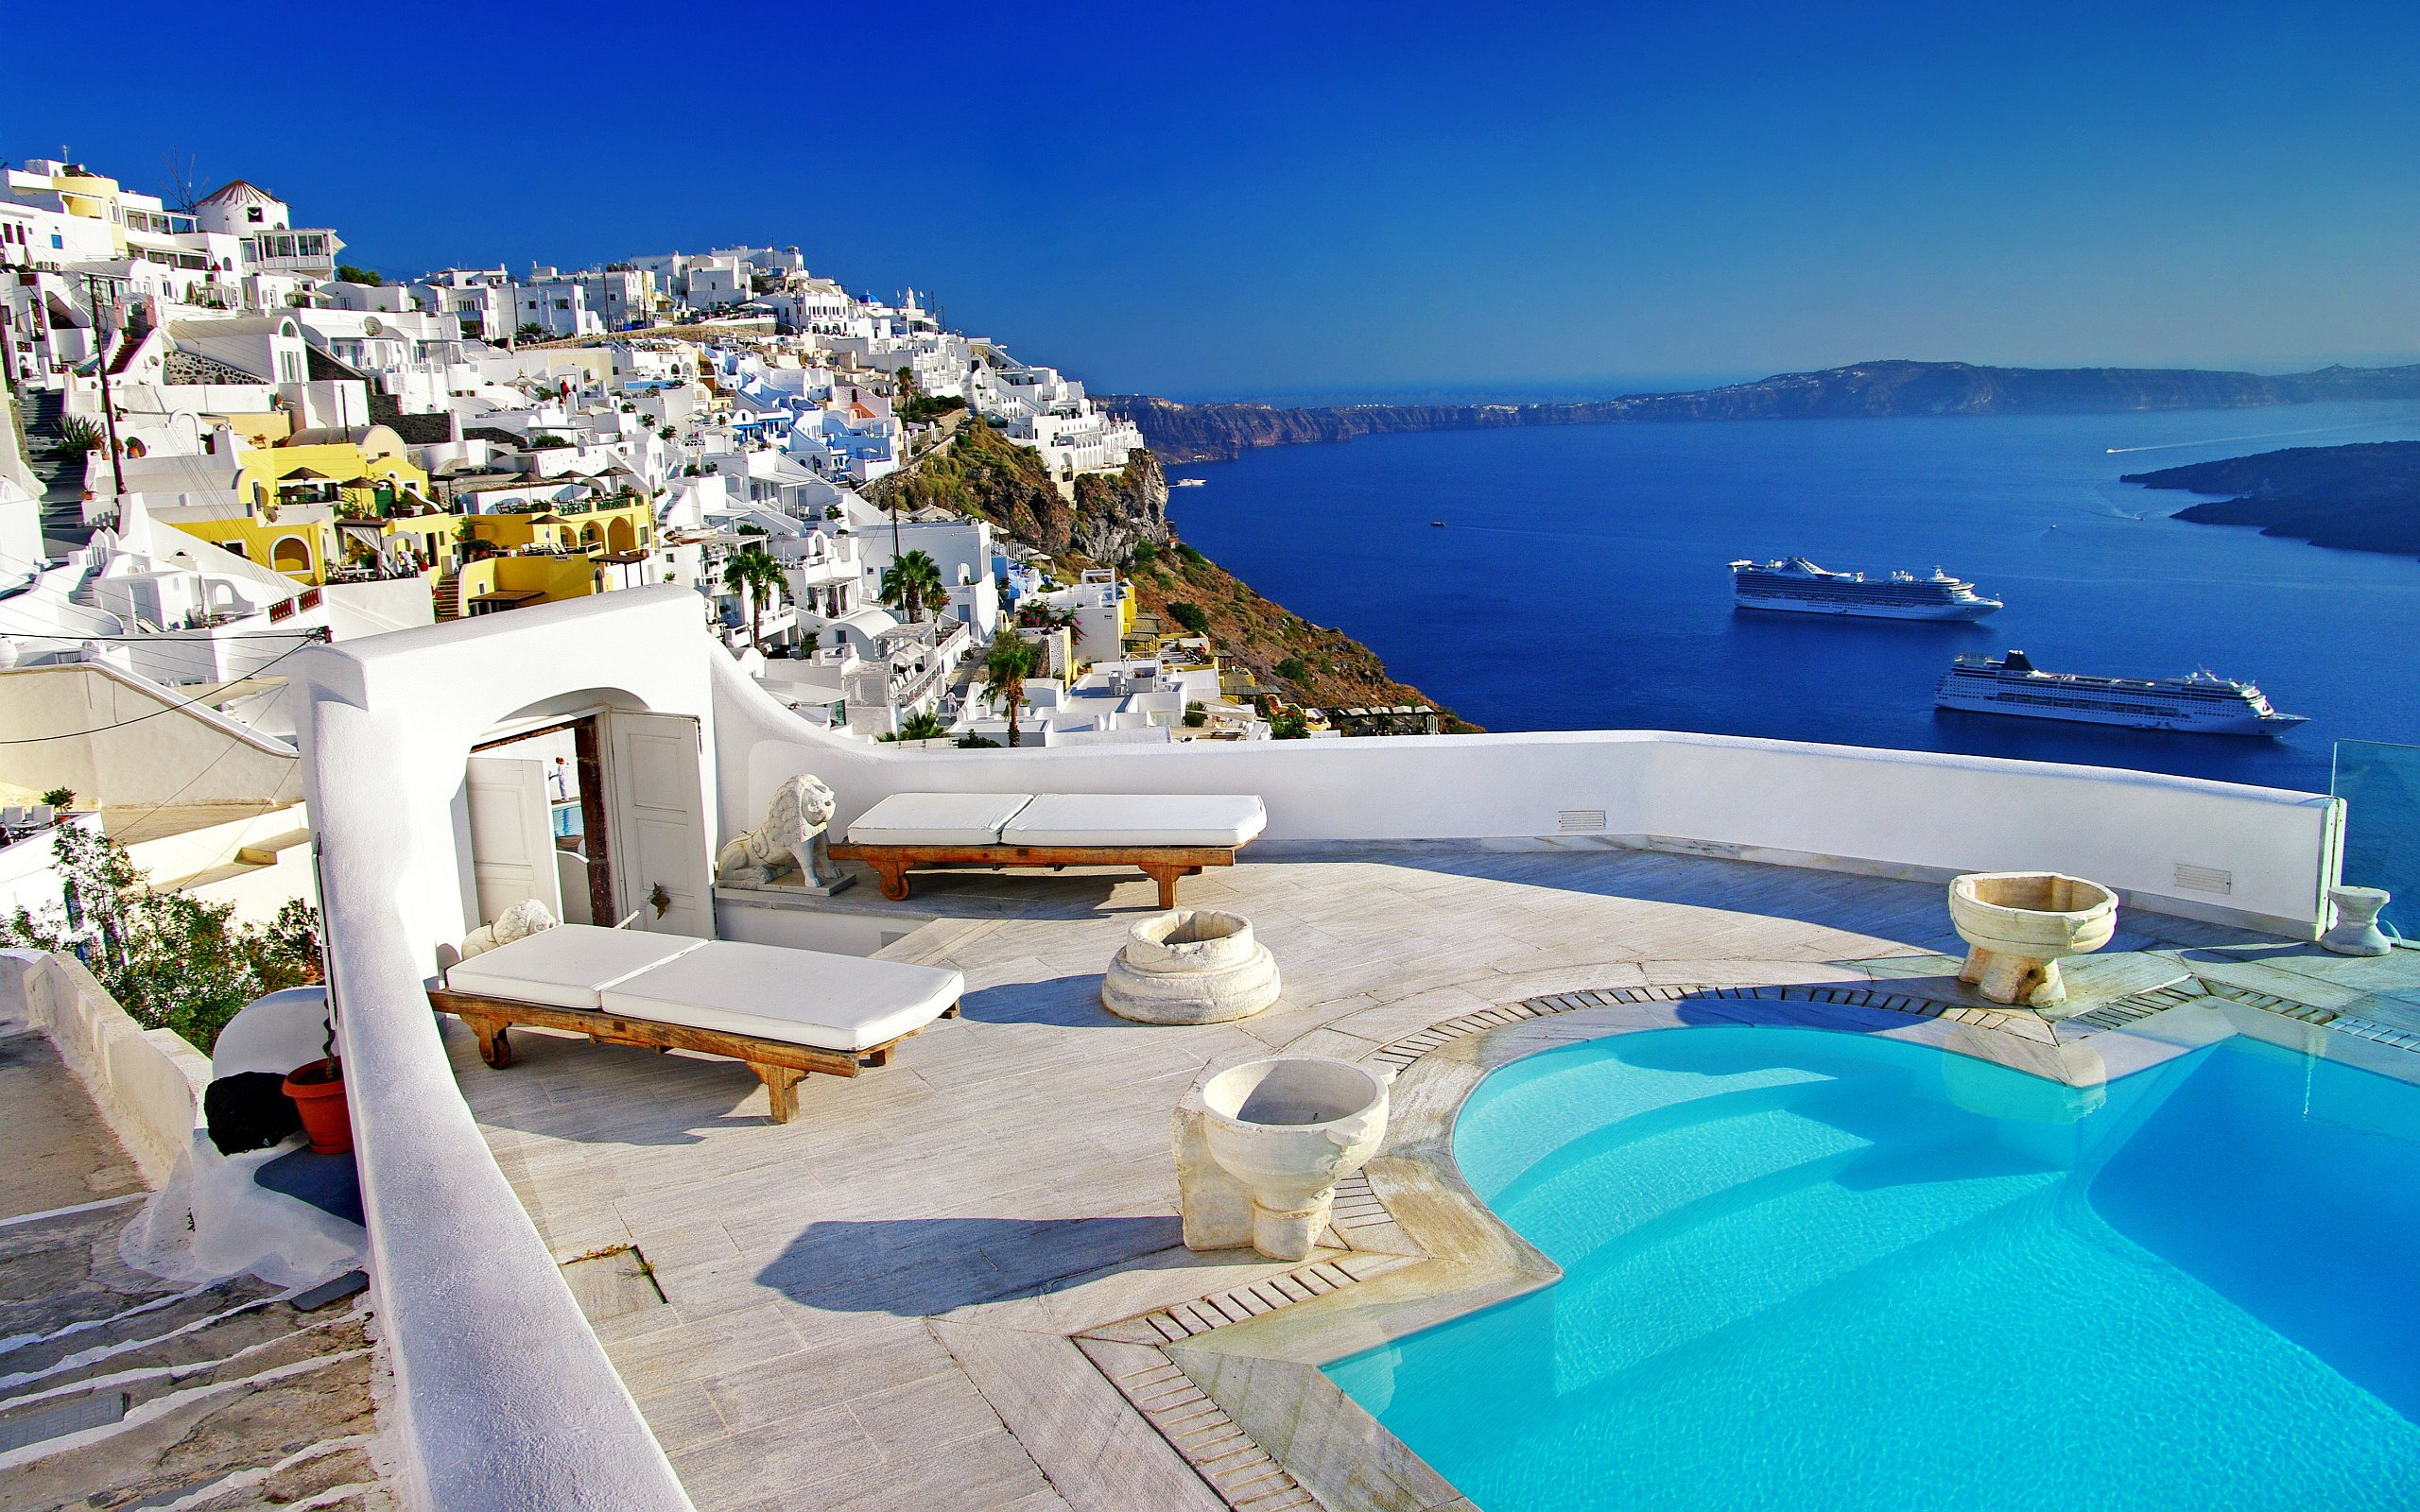 Santorini Greece Hotels Honeymoon HD Wallpaper Background Images 2560x1600